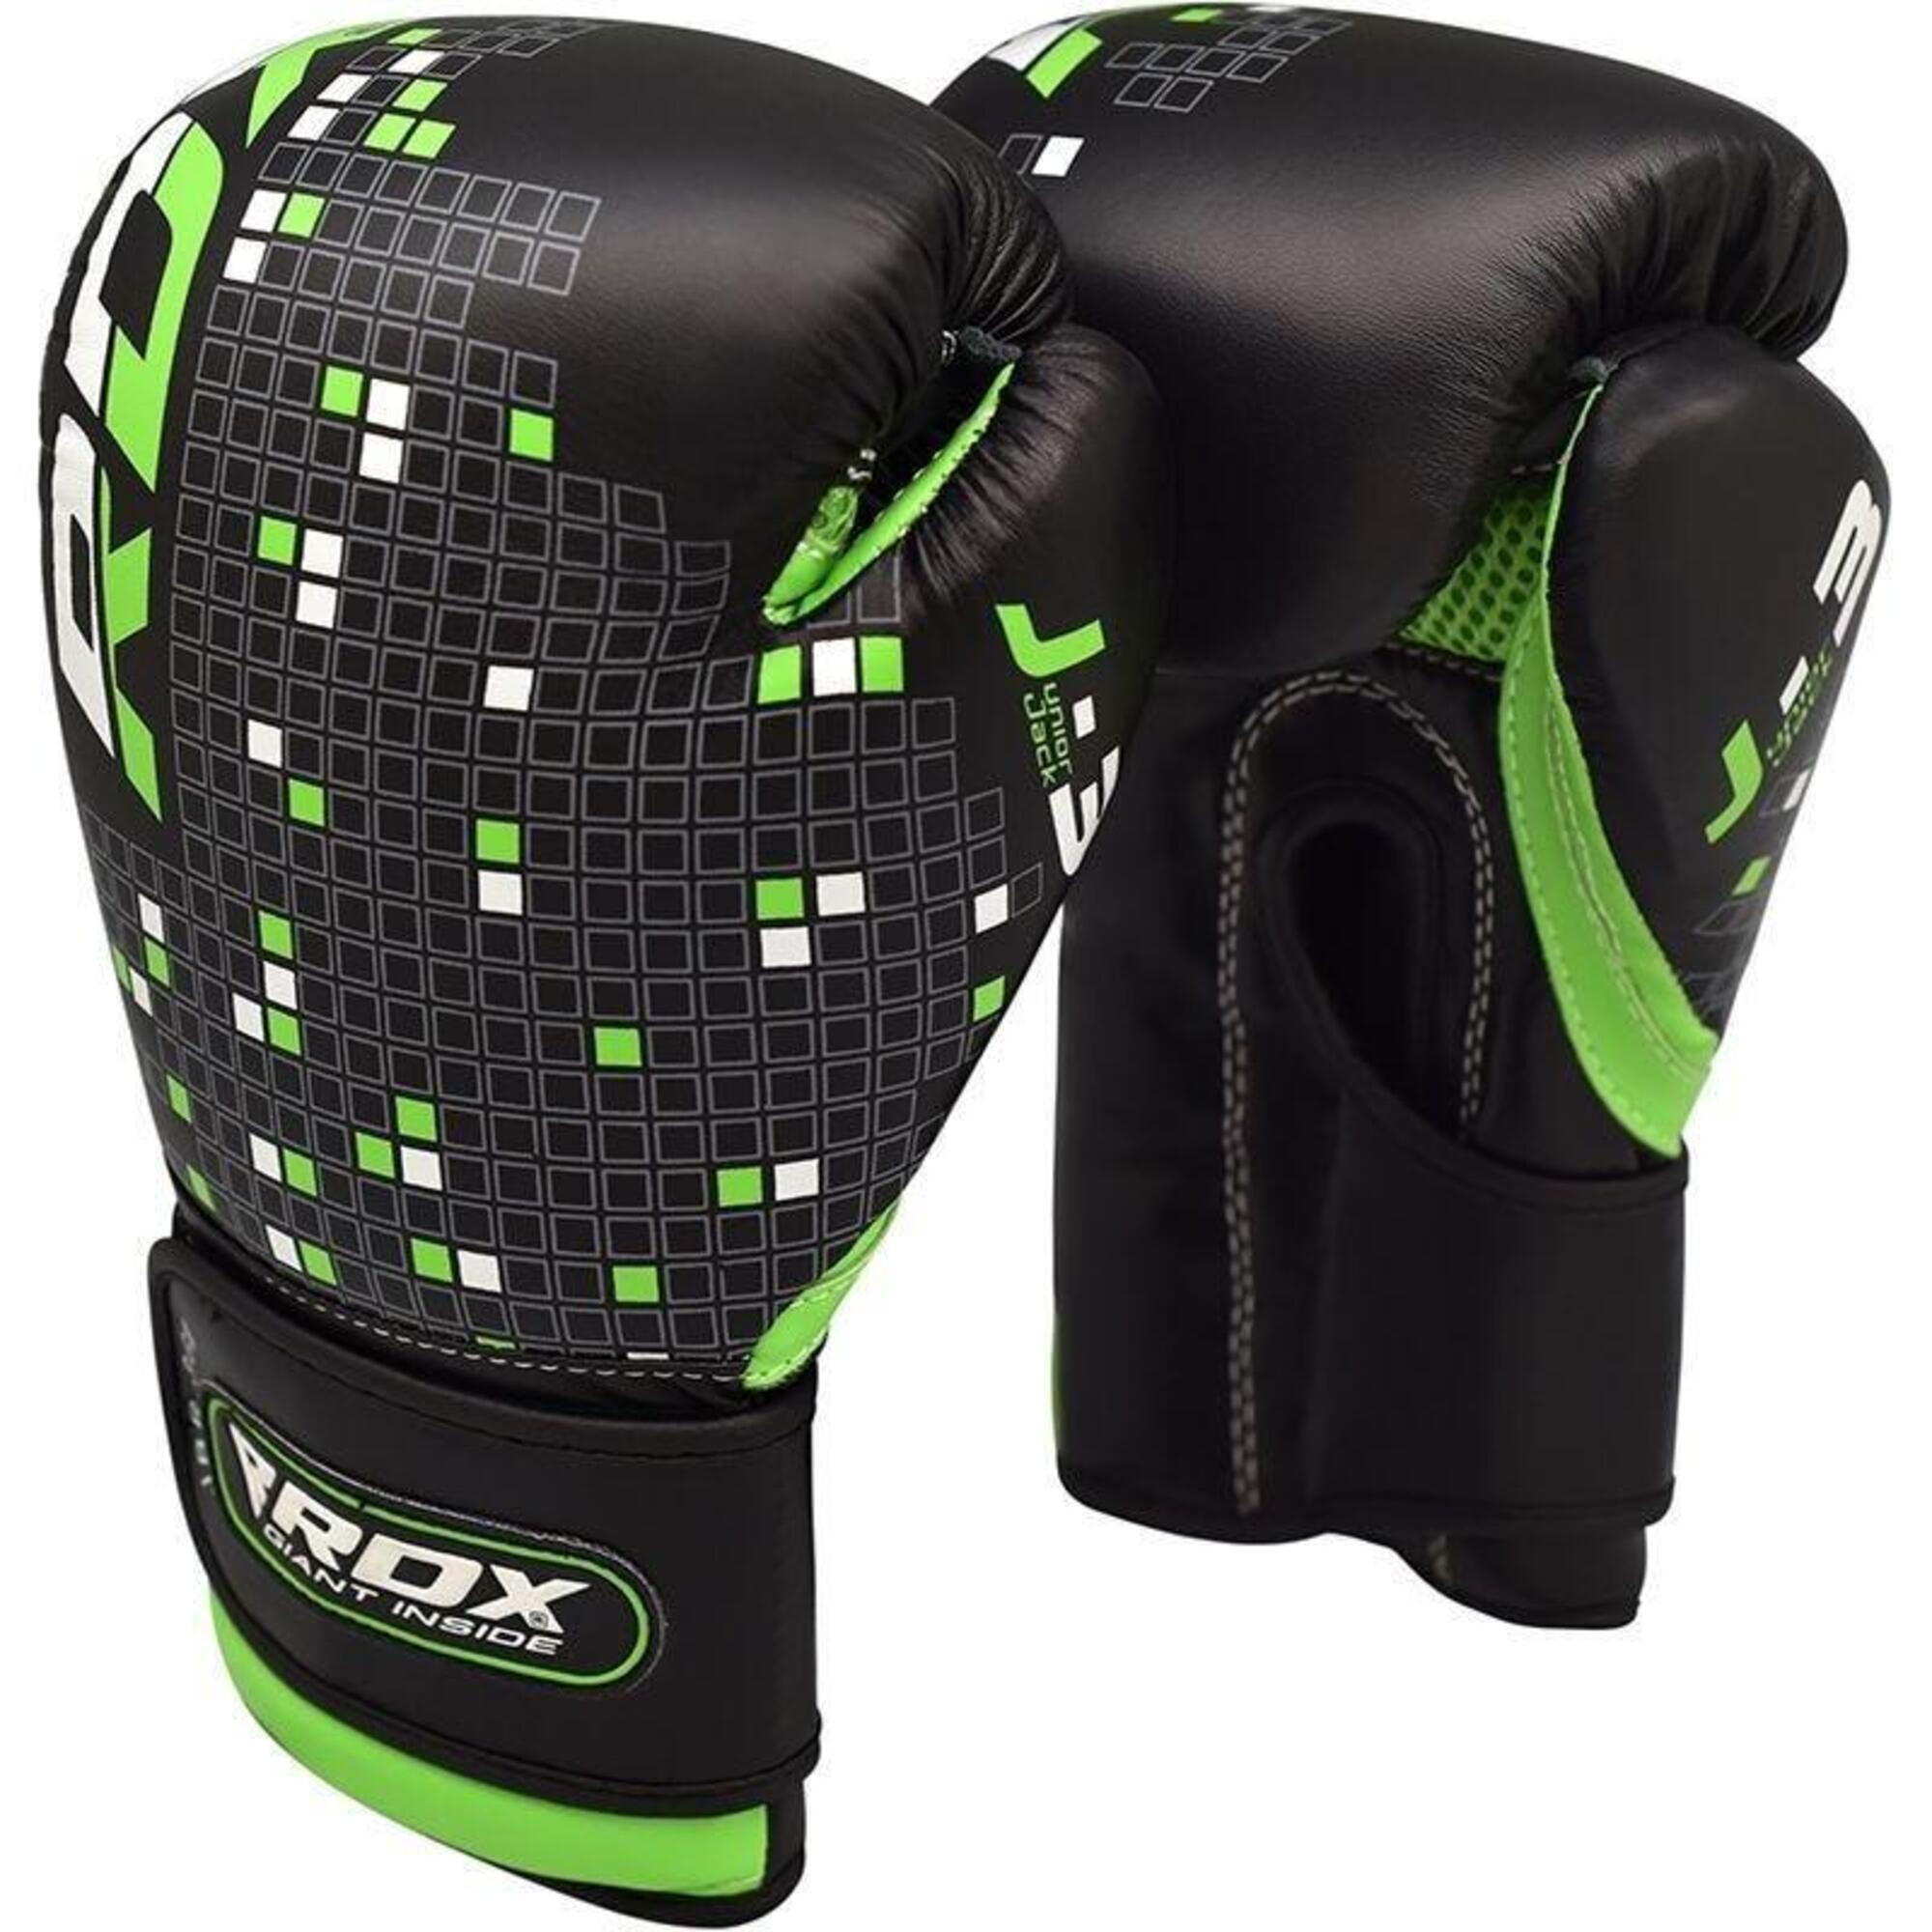 Gants de boxe Kids - 4 oz Rose